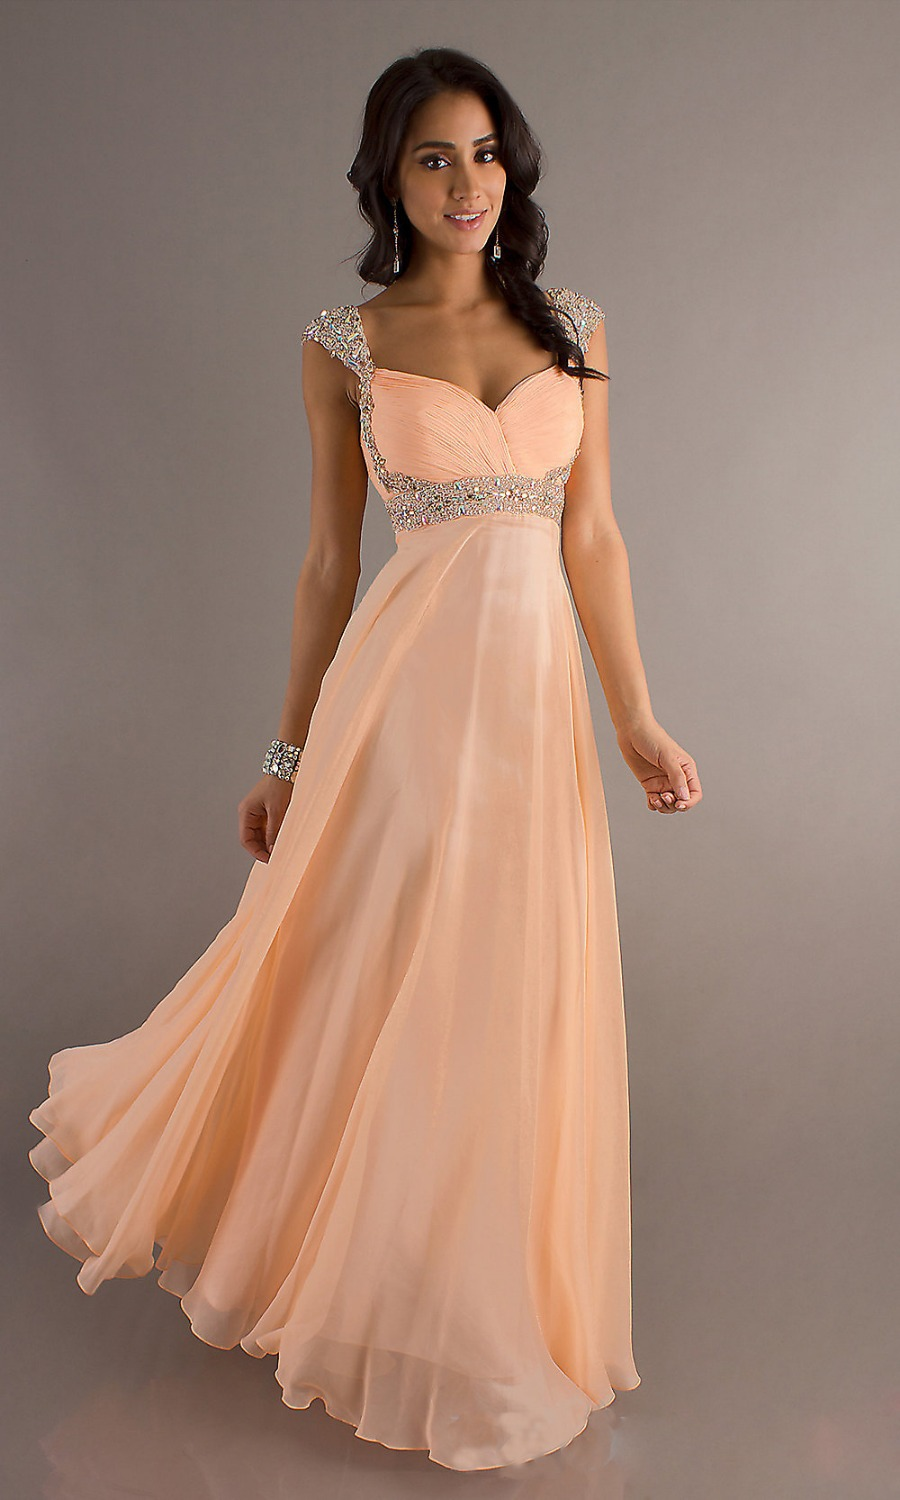 Aliexpress.com : Buy Custom Prom Long Dresses Party Dress Teen Gowns  Sweetheart Pleated Crystal Sequins Chiffon Evening ...